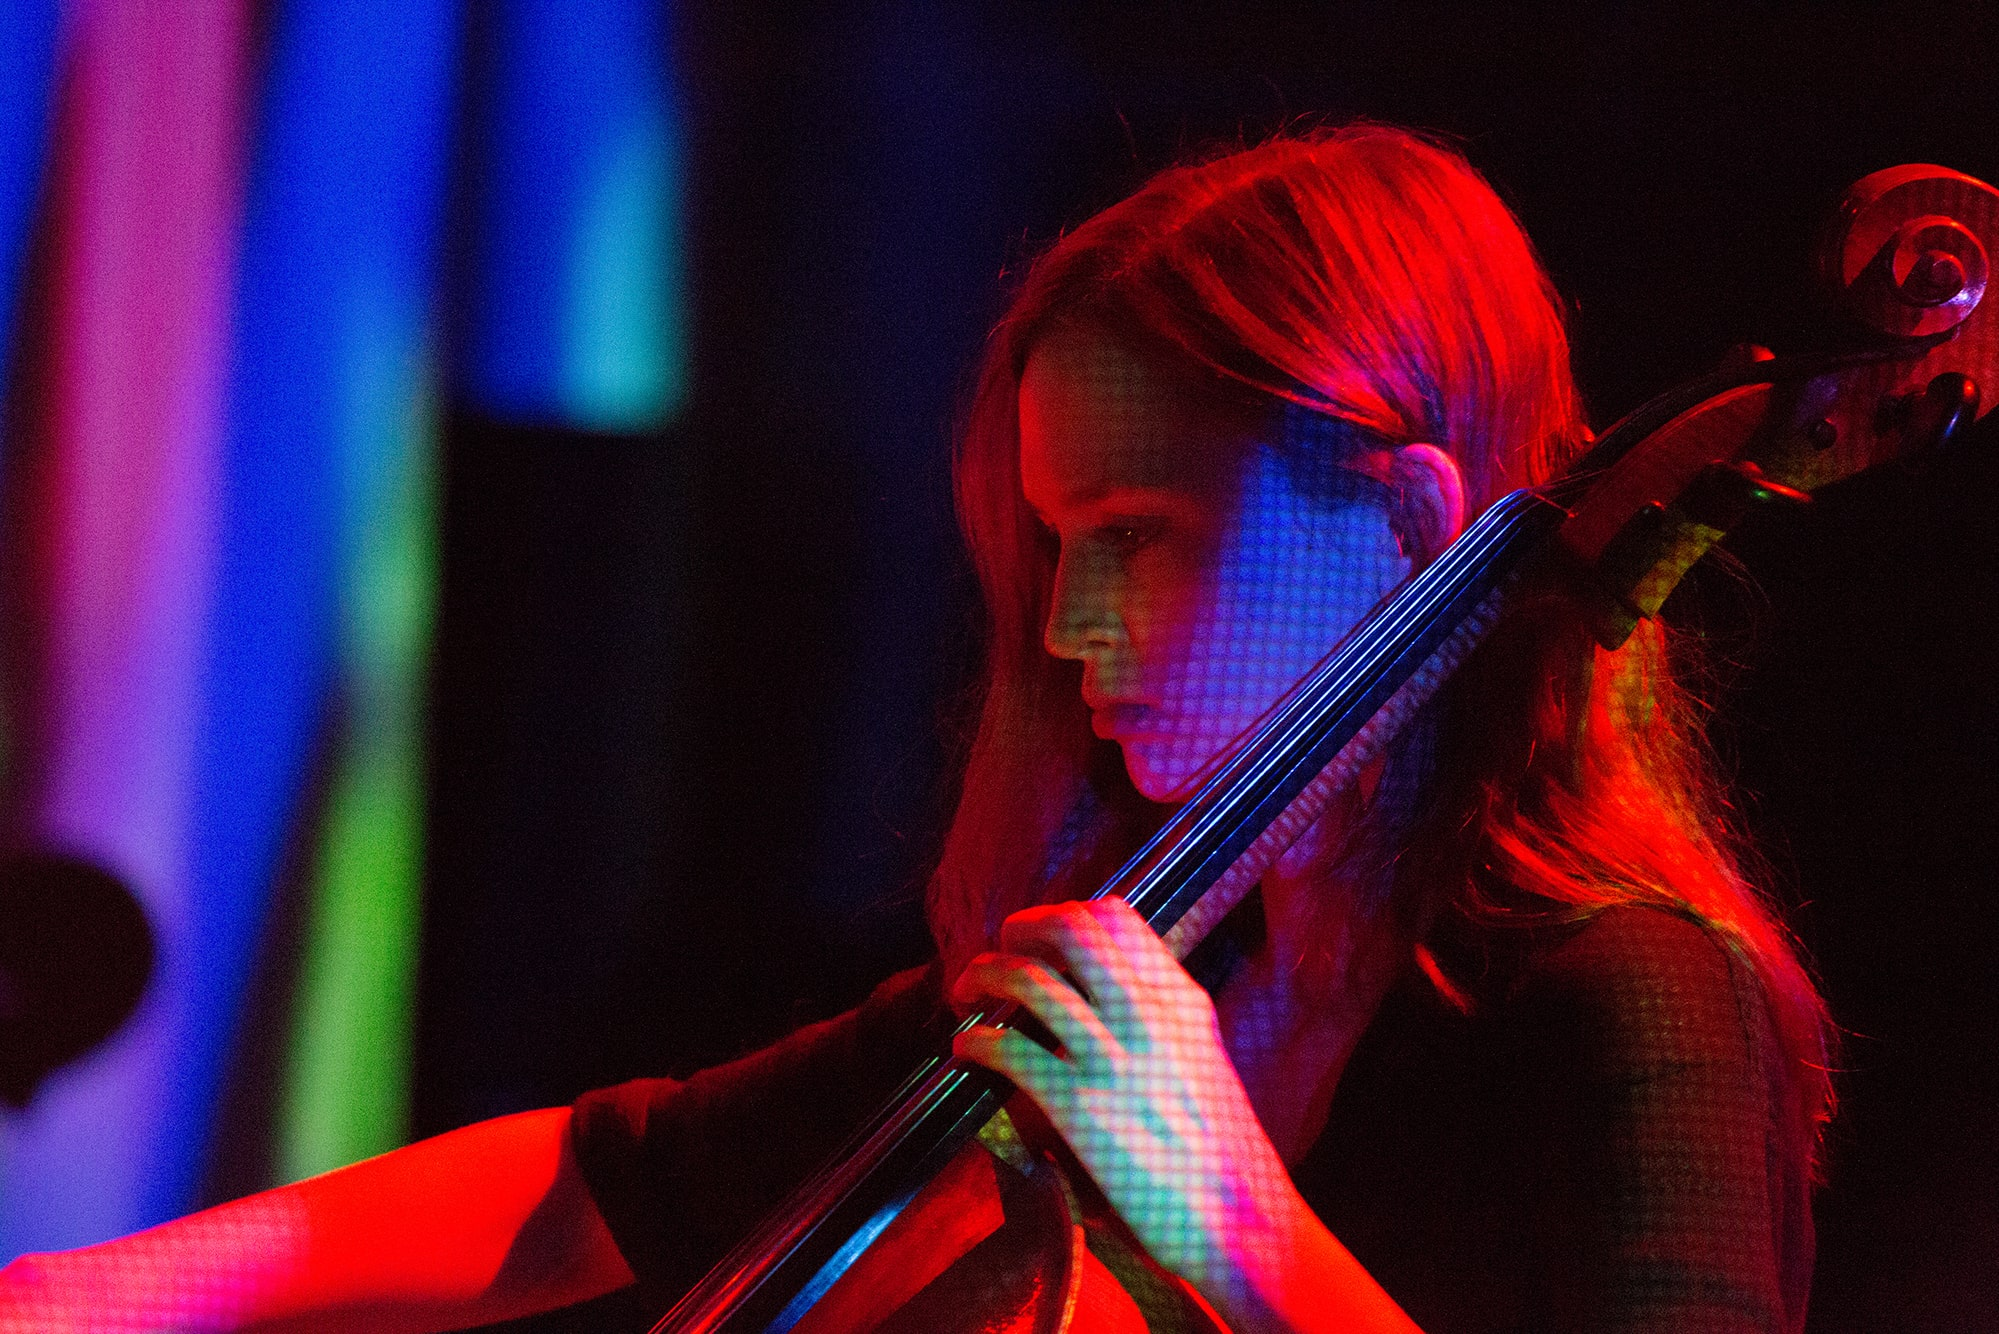 Mariel Roberts performing Randy Gibson's <em>Apparitions of The Four Pillars in The Midwinter Starfield under The Astral 789 Duet</em> at the 2013 Avant Music Festival